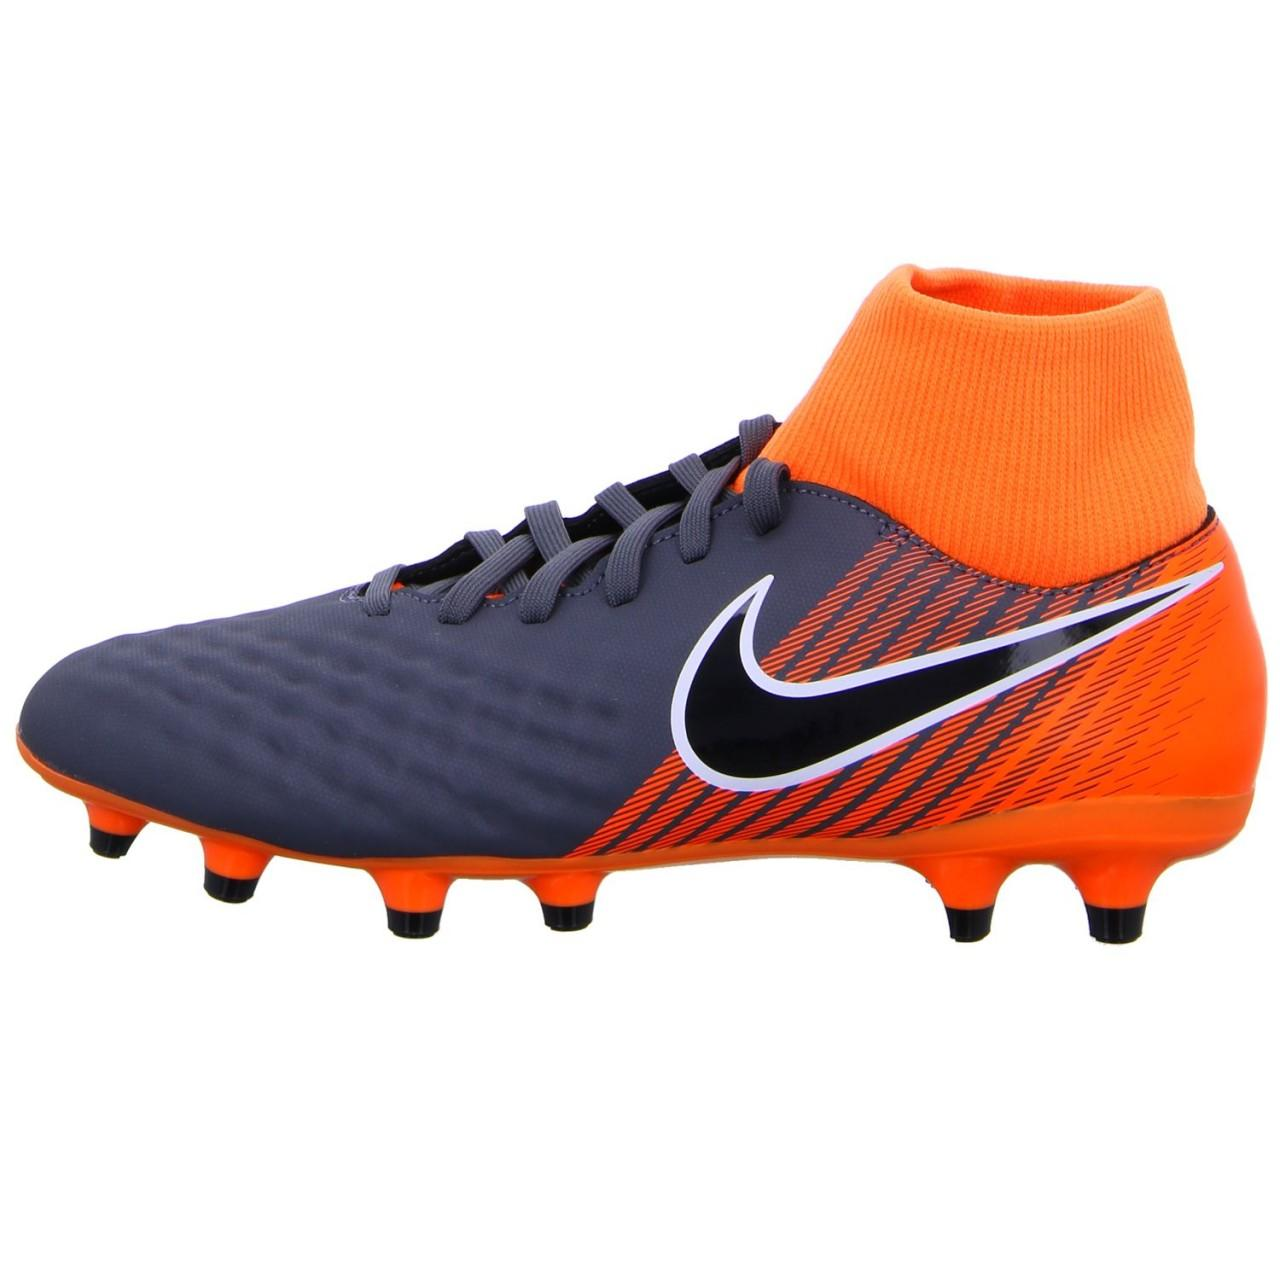 d81ff01c016f Nike - Multicolor Trainers Grey Magista Obra 2 Aademy Dynamic for Men -  Lyst. View fullscreen